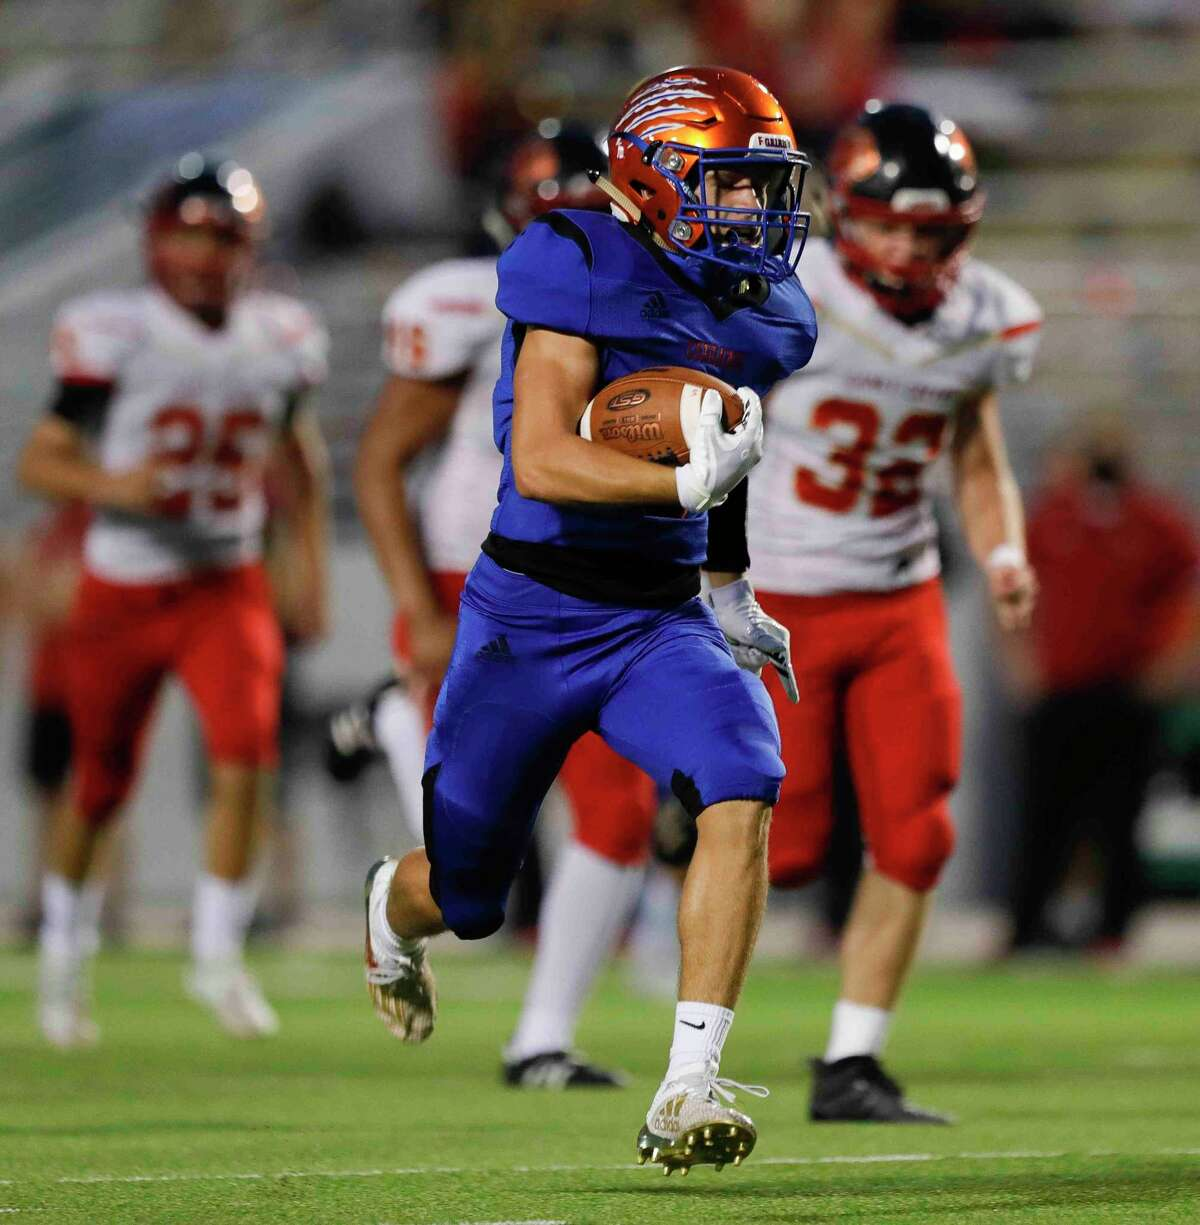 Grand Oaks running back Sean Zver (5) is expected to fill the void at tailback for the Grizzlies following Micah Cooper's graduation.